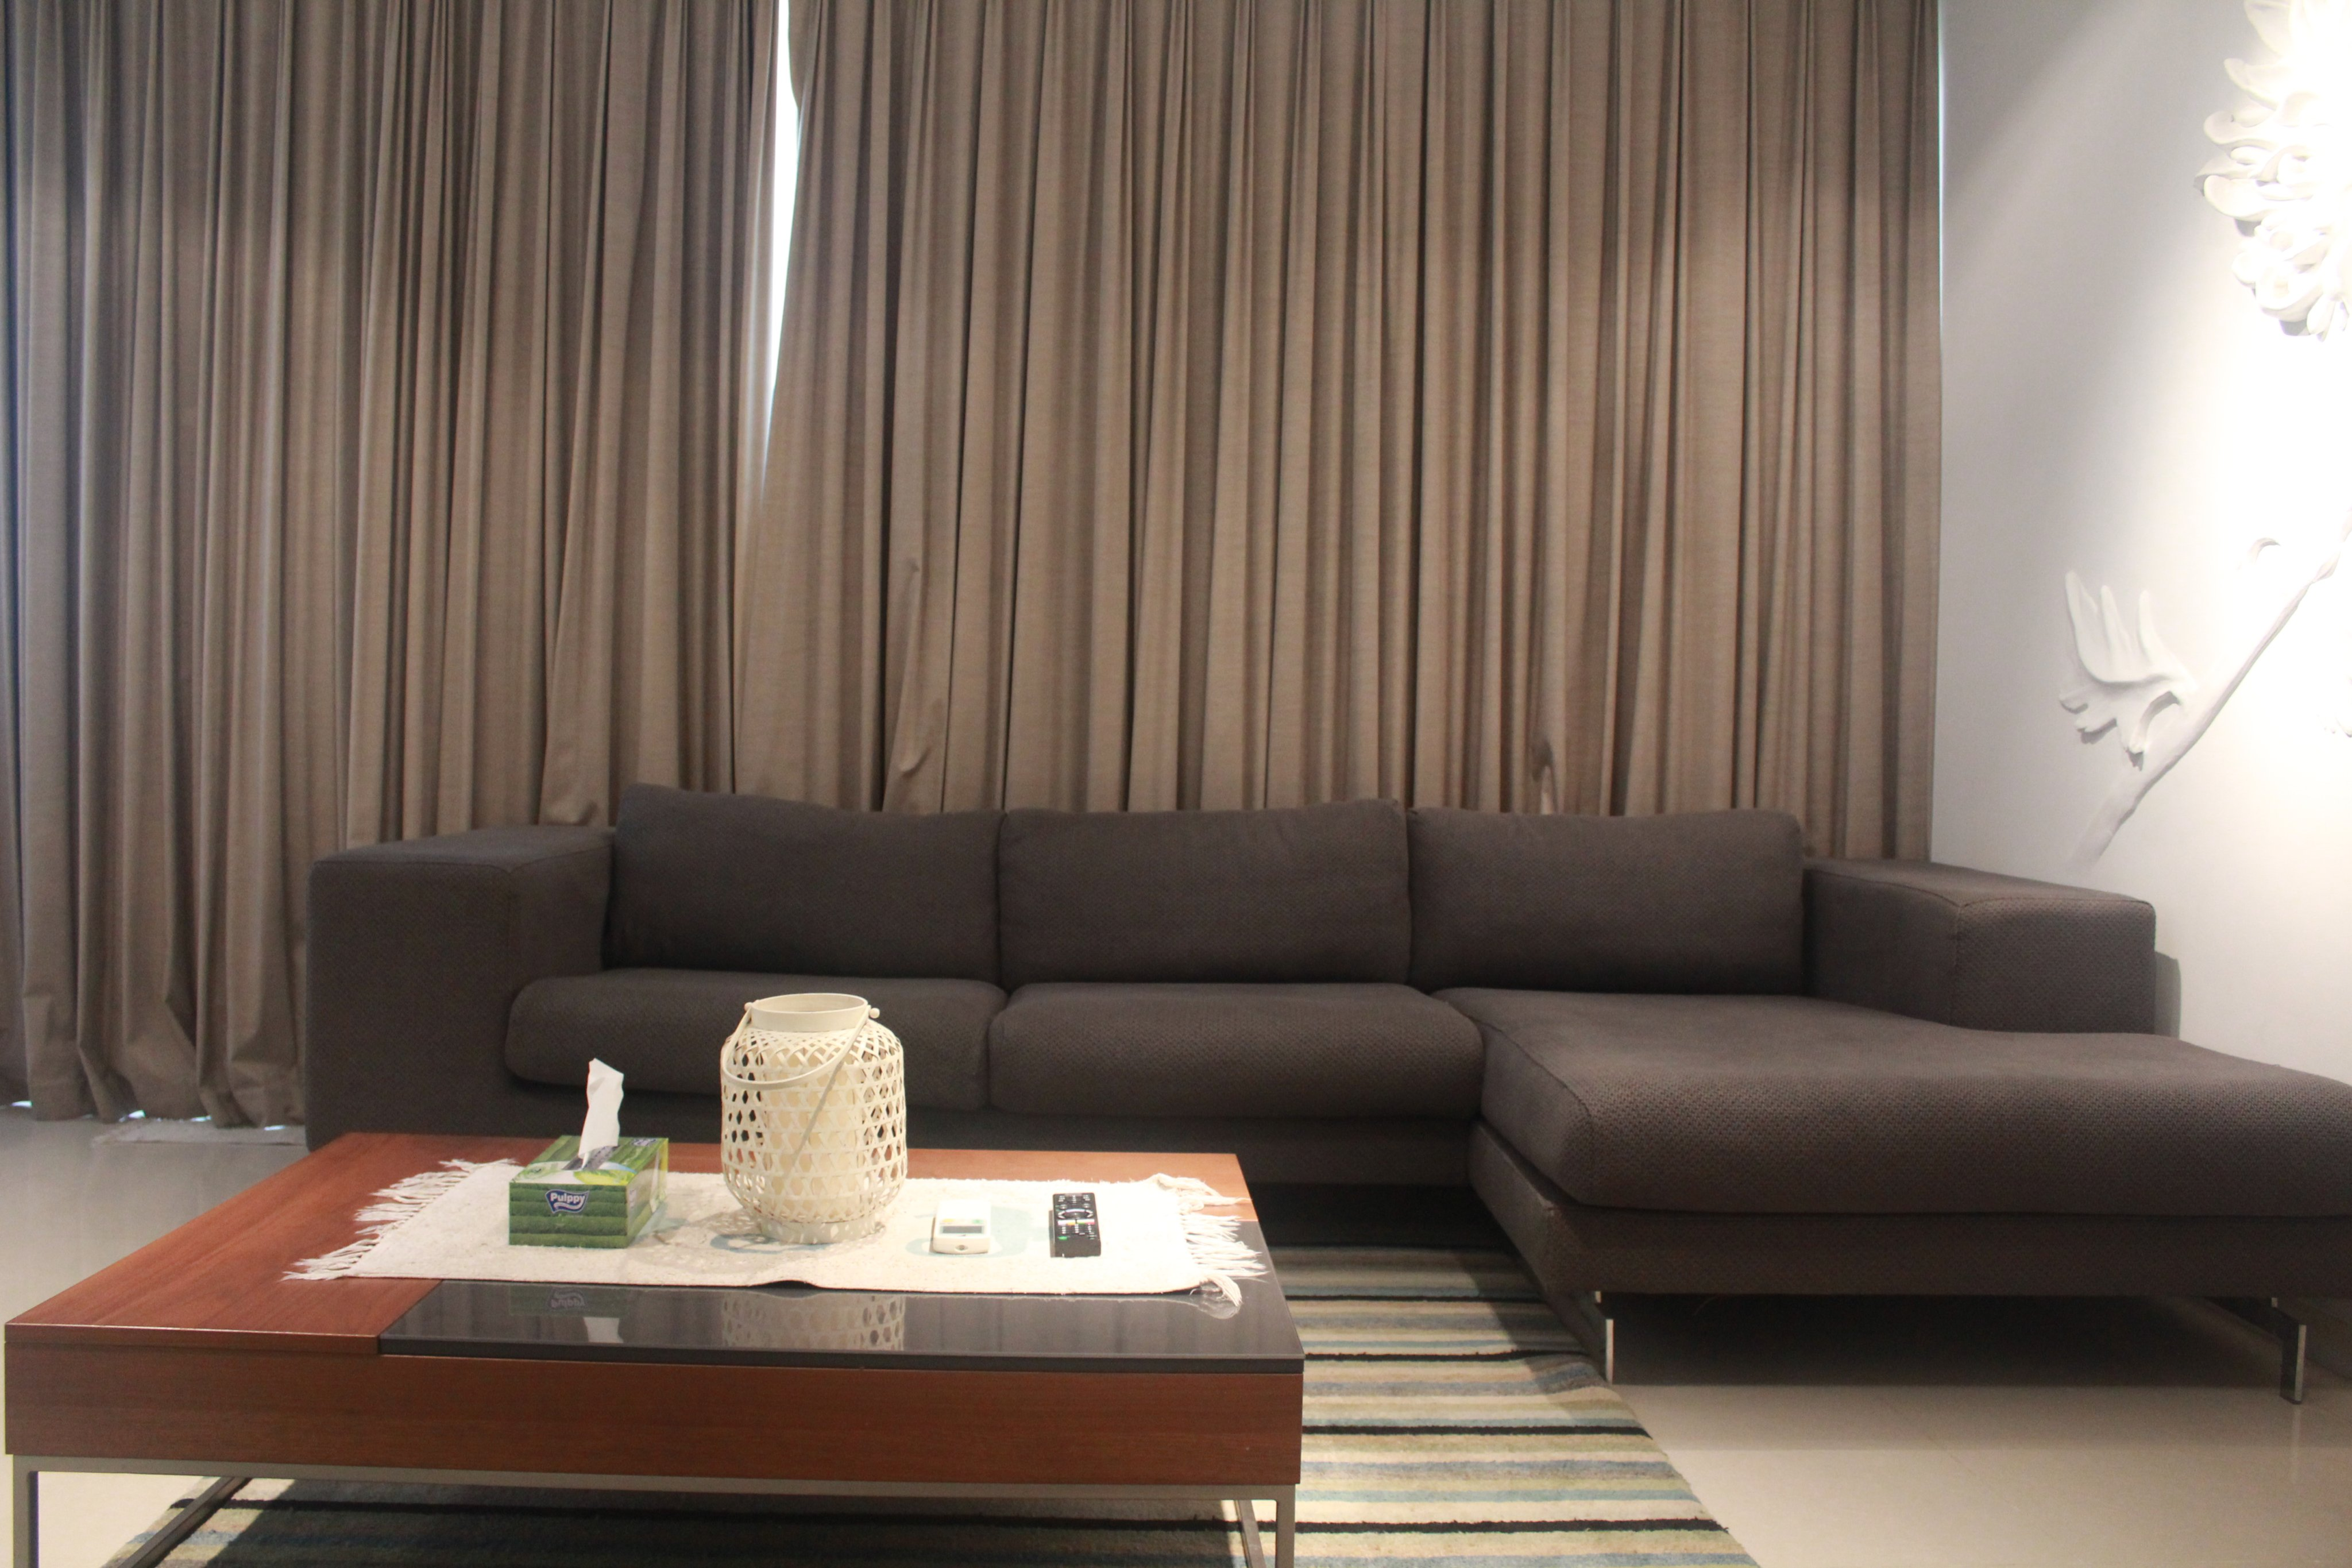 saigon pearl apartment for rent in binh thanh district hcmc D201237(19)